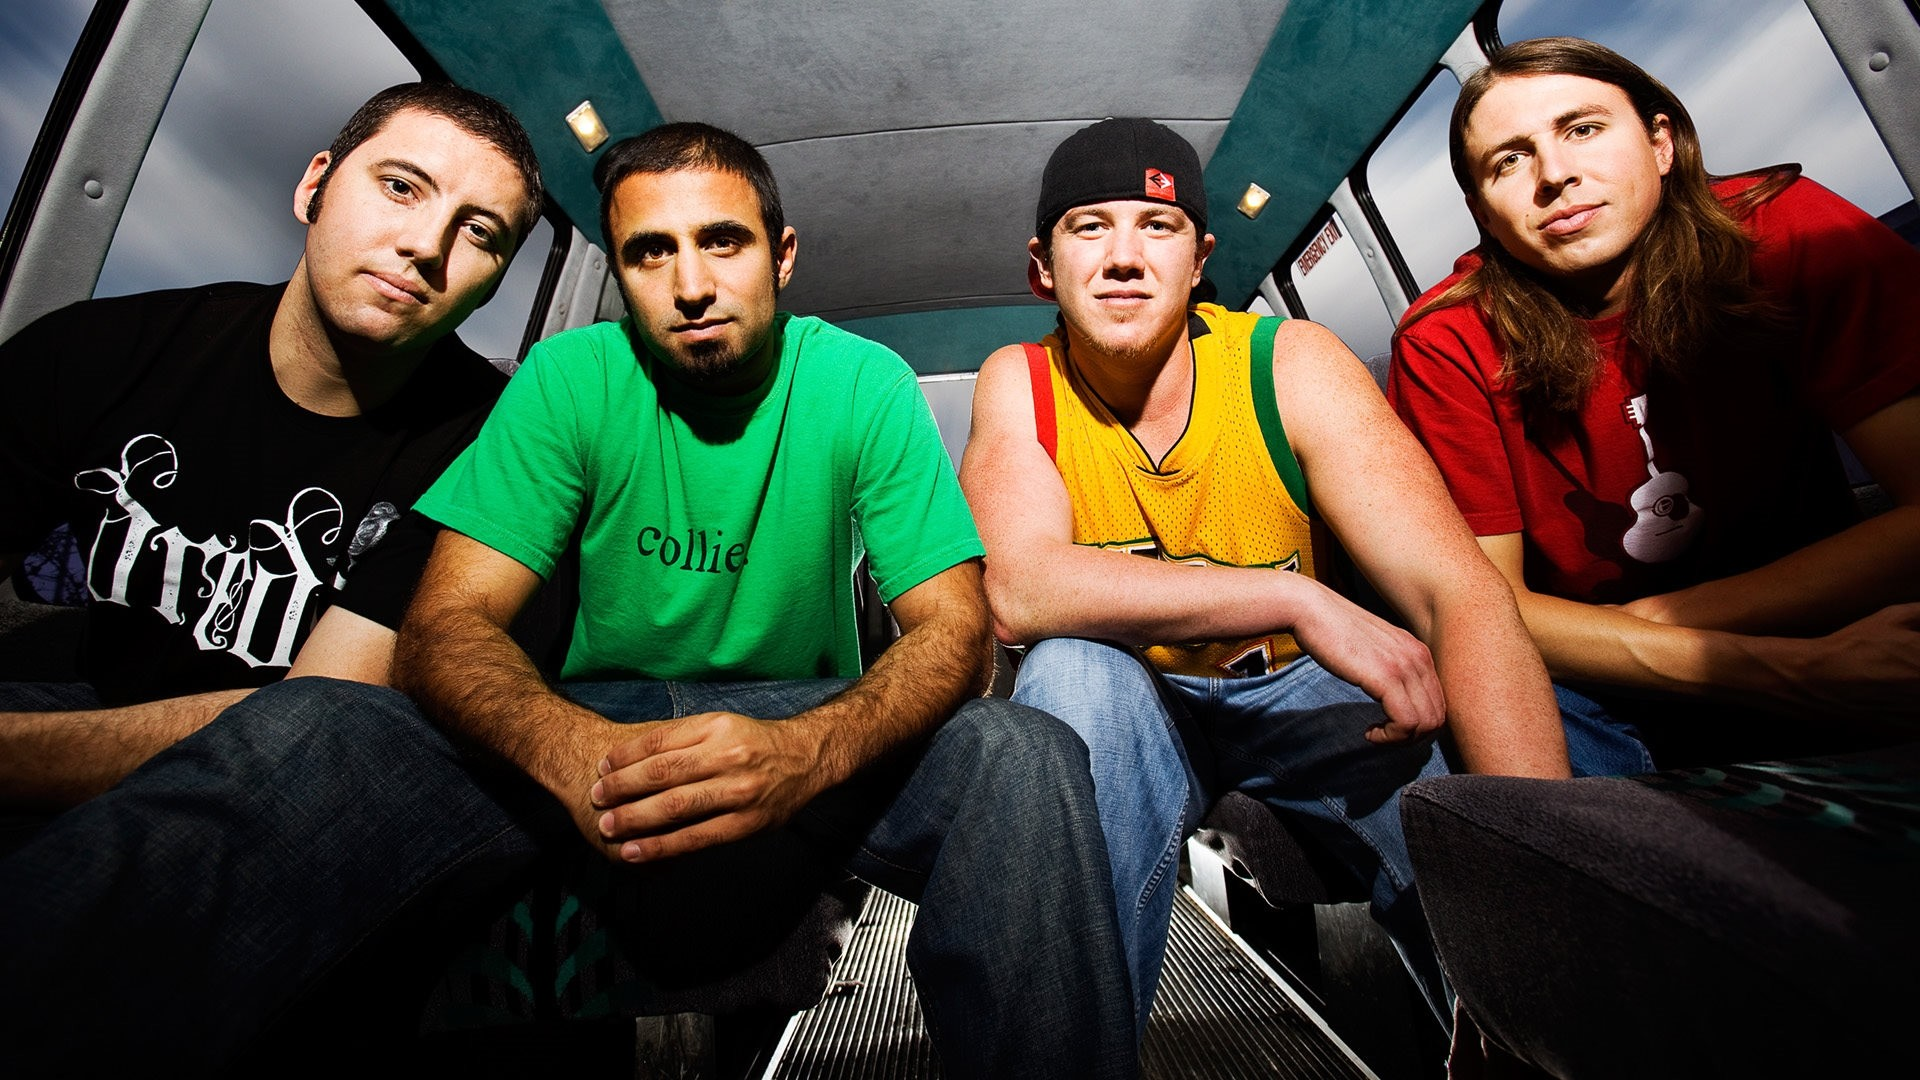 1920x1080 rebelution, band, members - http://www.wallpapers4u.org/